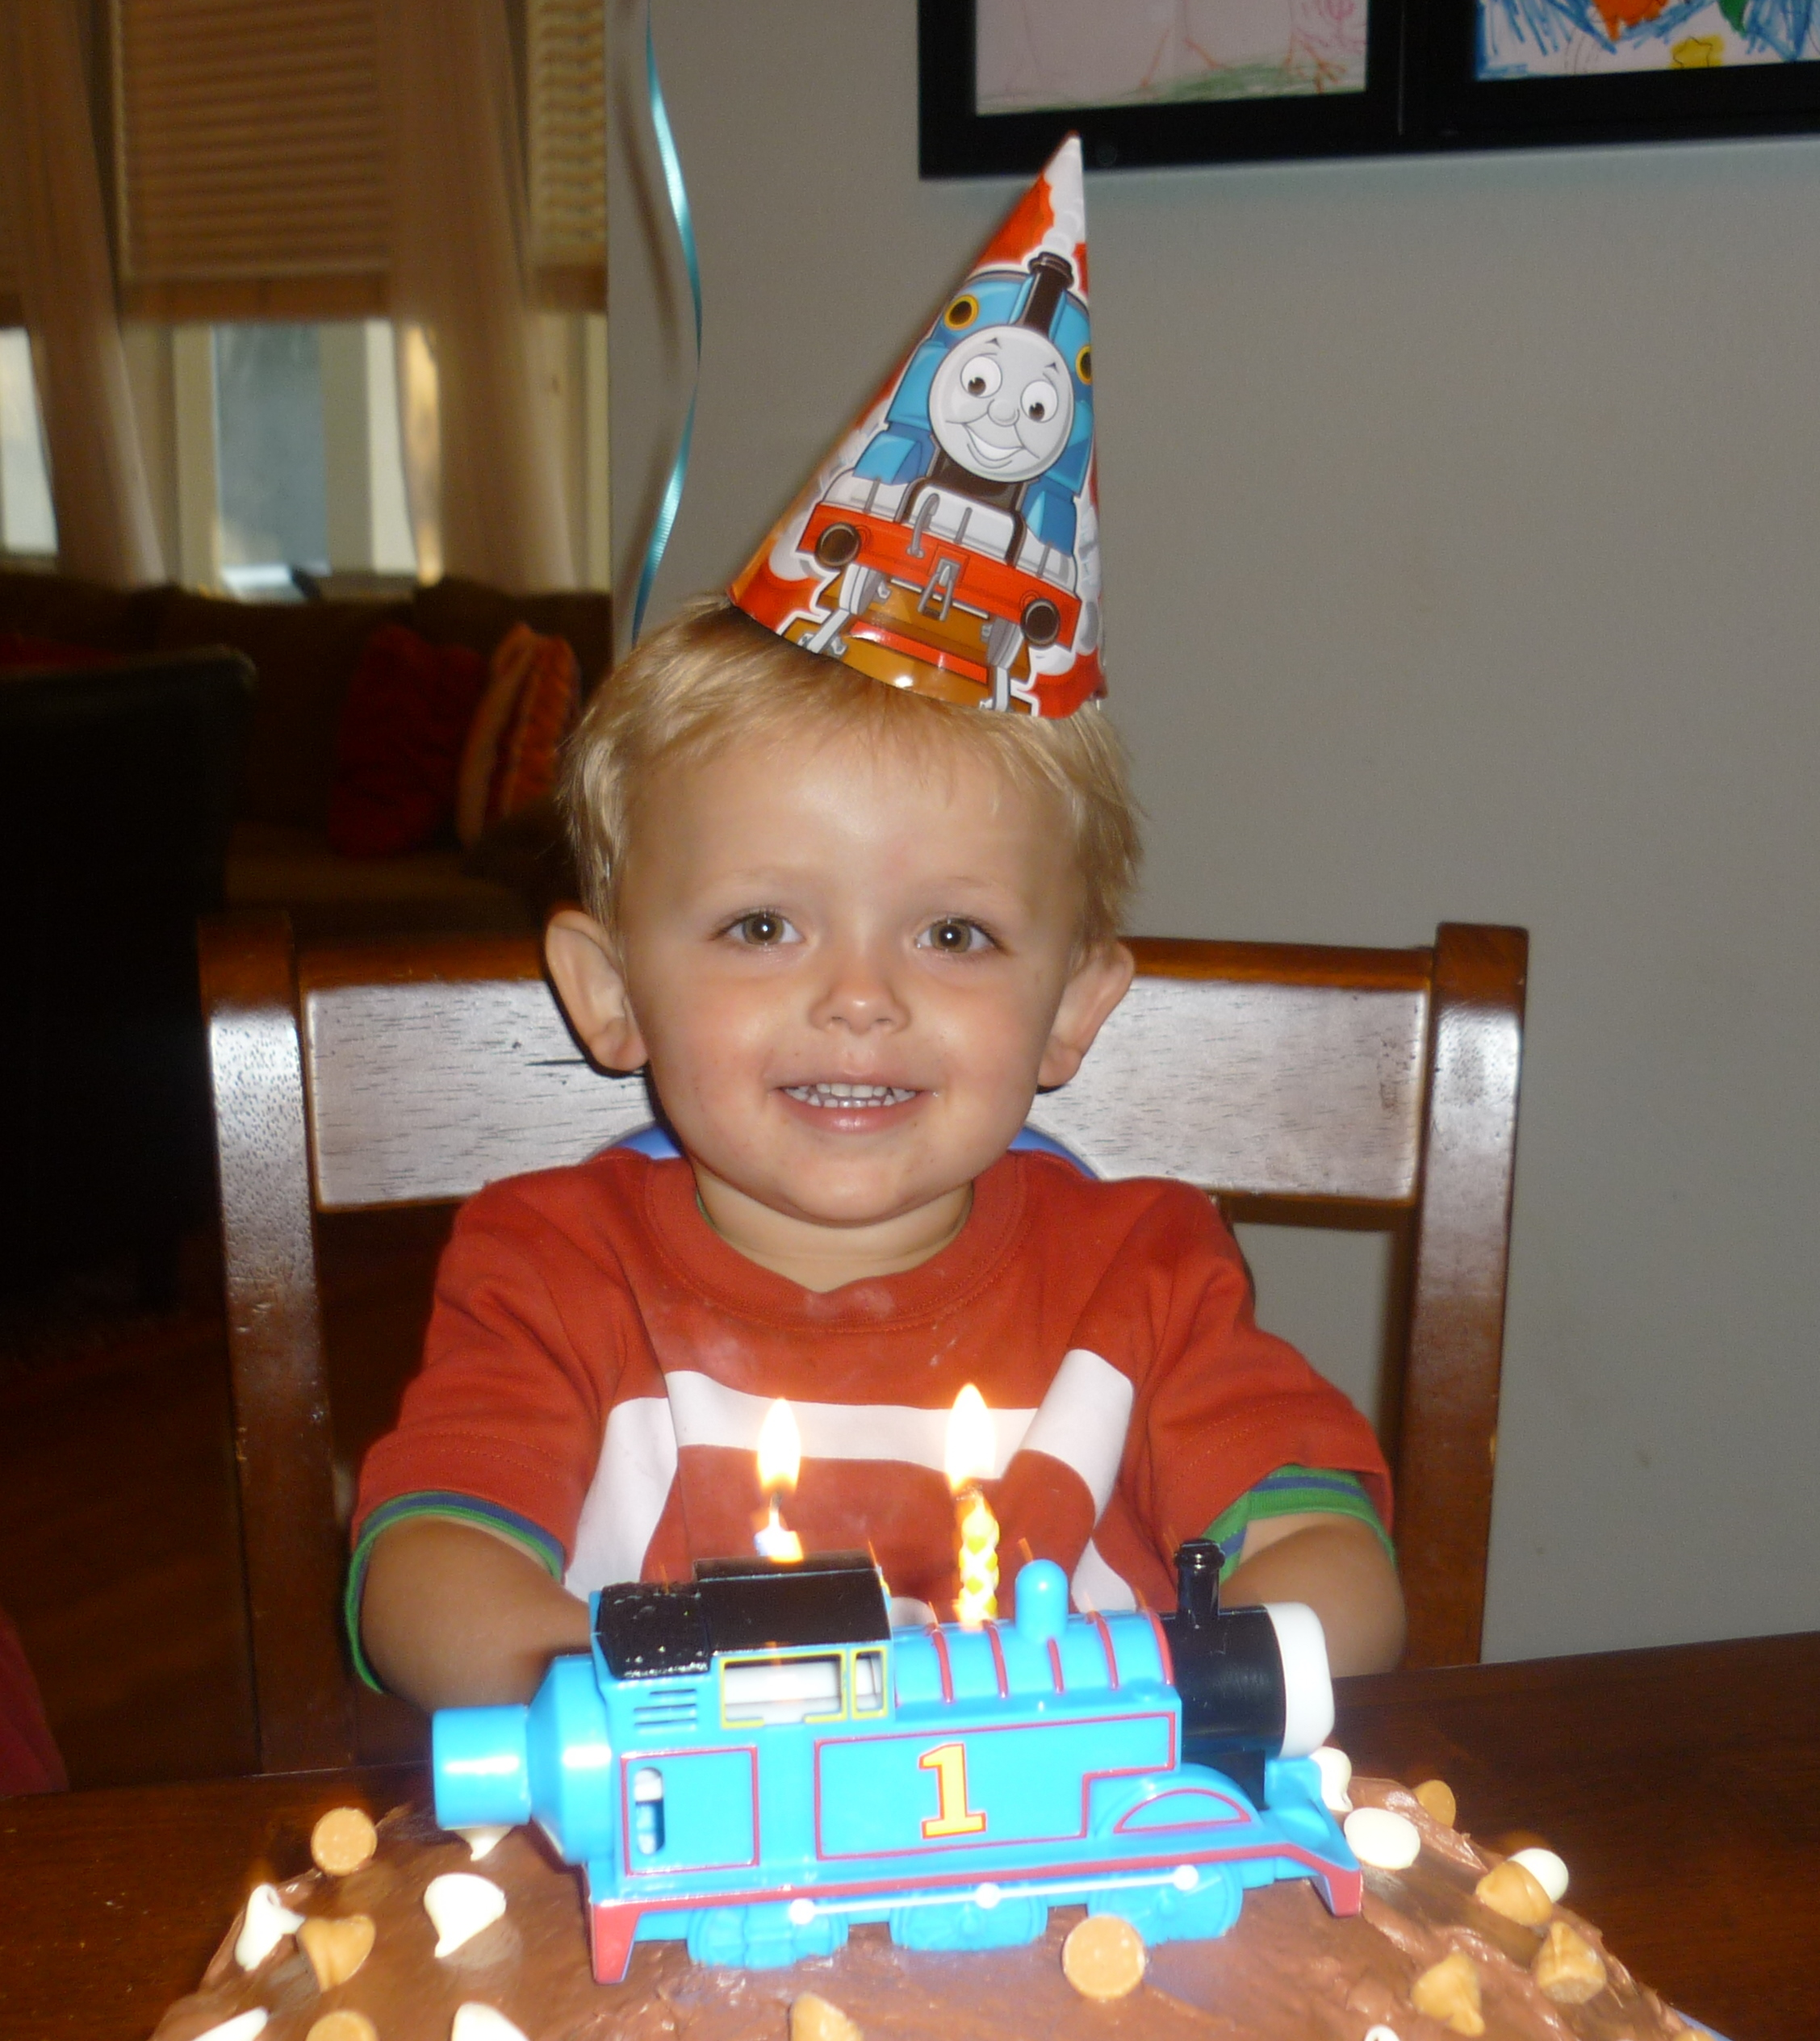 Happy Birthday To Matty And Eat Cake I Was So Proud Of He Wanted Wear The Hat Actually Blew Out His Own Candles Such A Sweet Boy